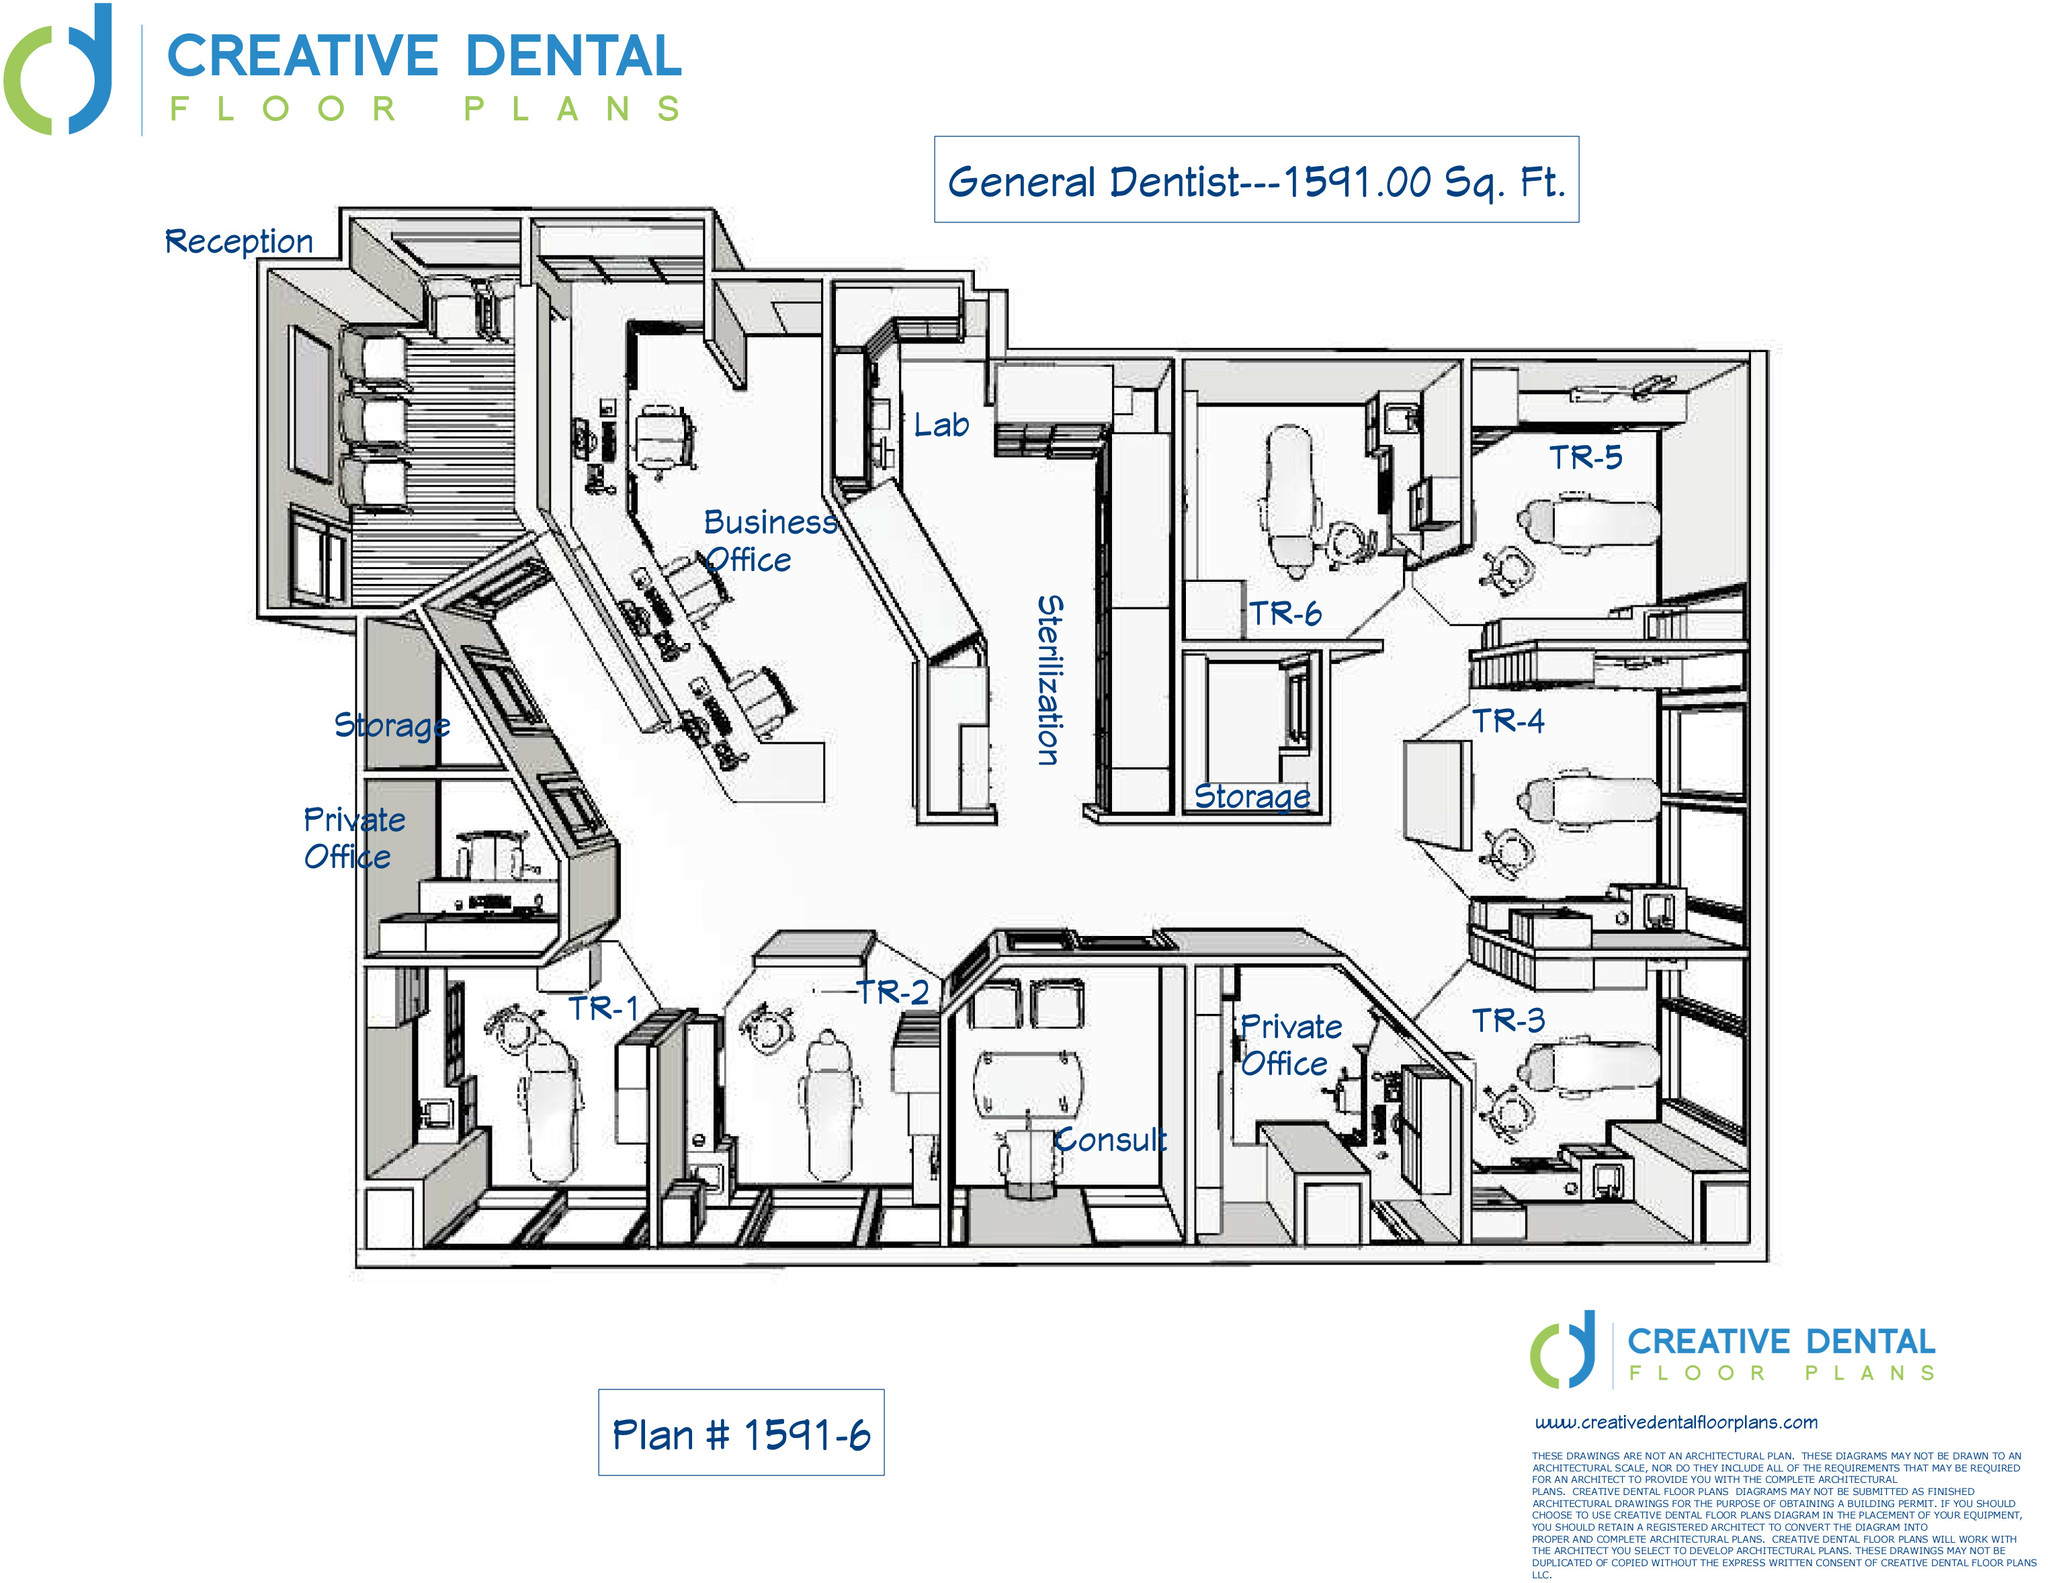 Creative Dental Floor Plans Strip Mall